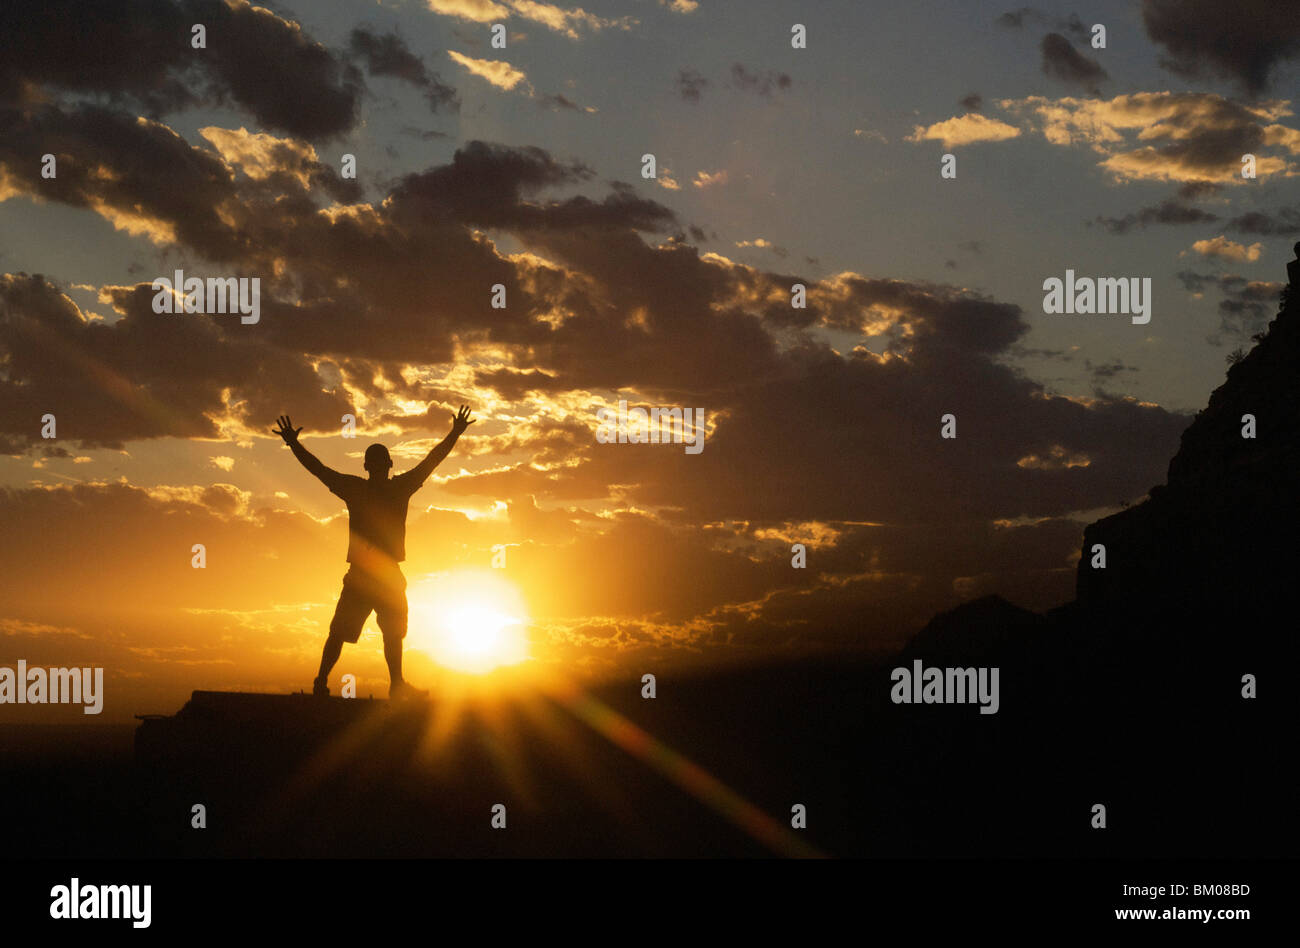 nature scenery and inspirational concepts: silhouette of man celebrating the dramatic sunset sky standing arms spread - Stock Image